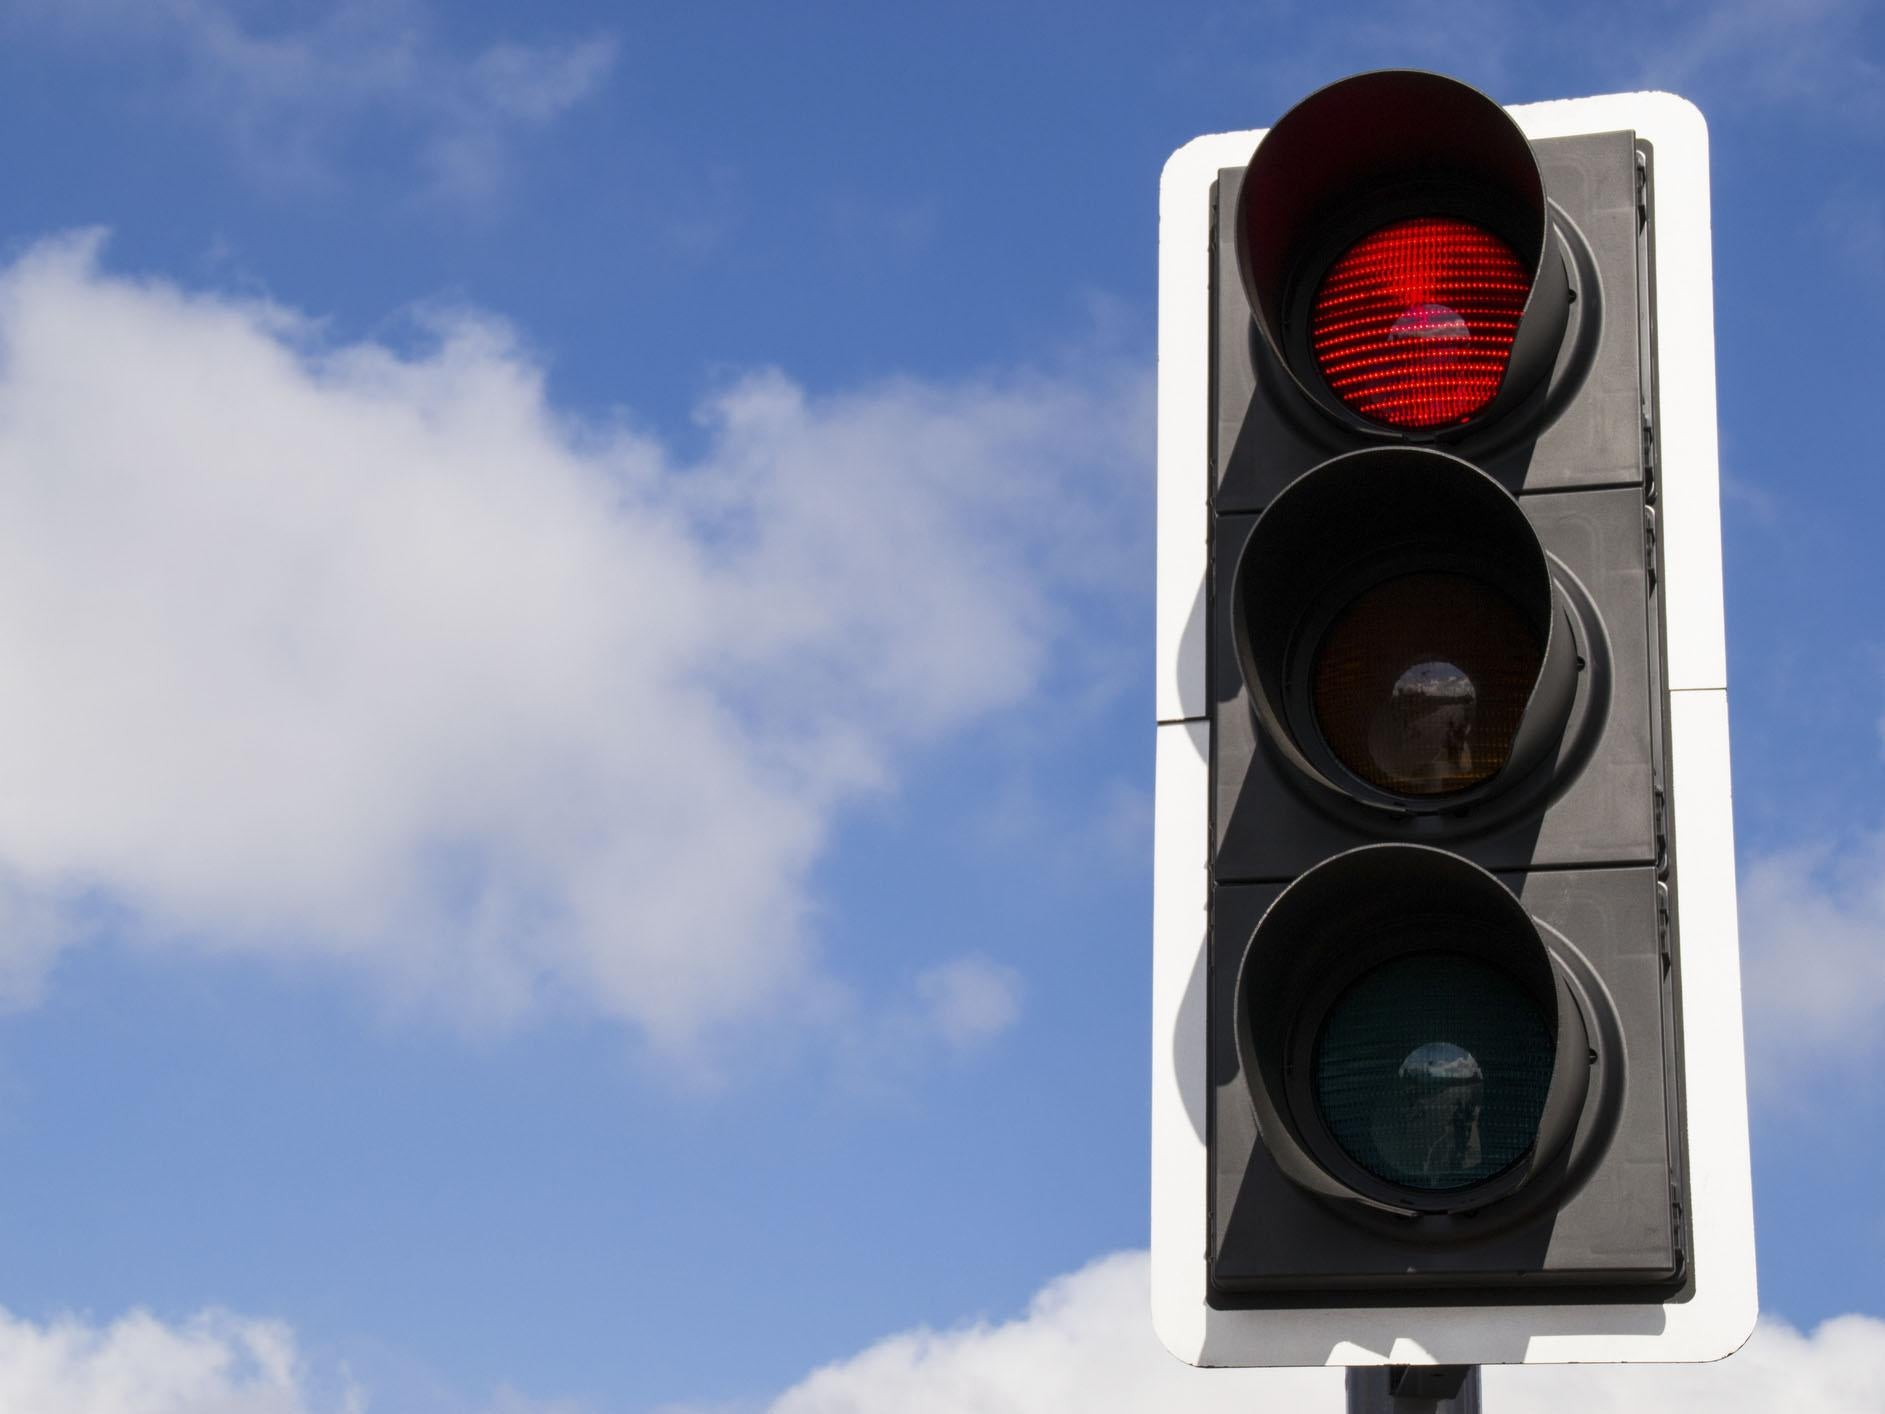 Quarter of UK motorists don't know correct order of traffic lights, finds study